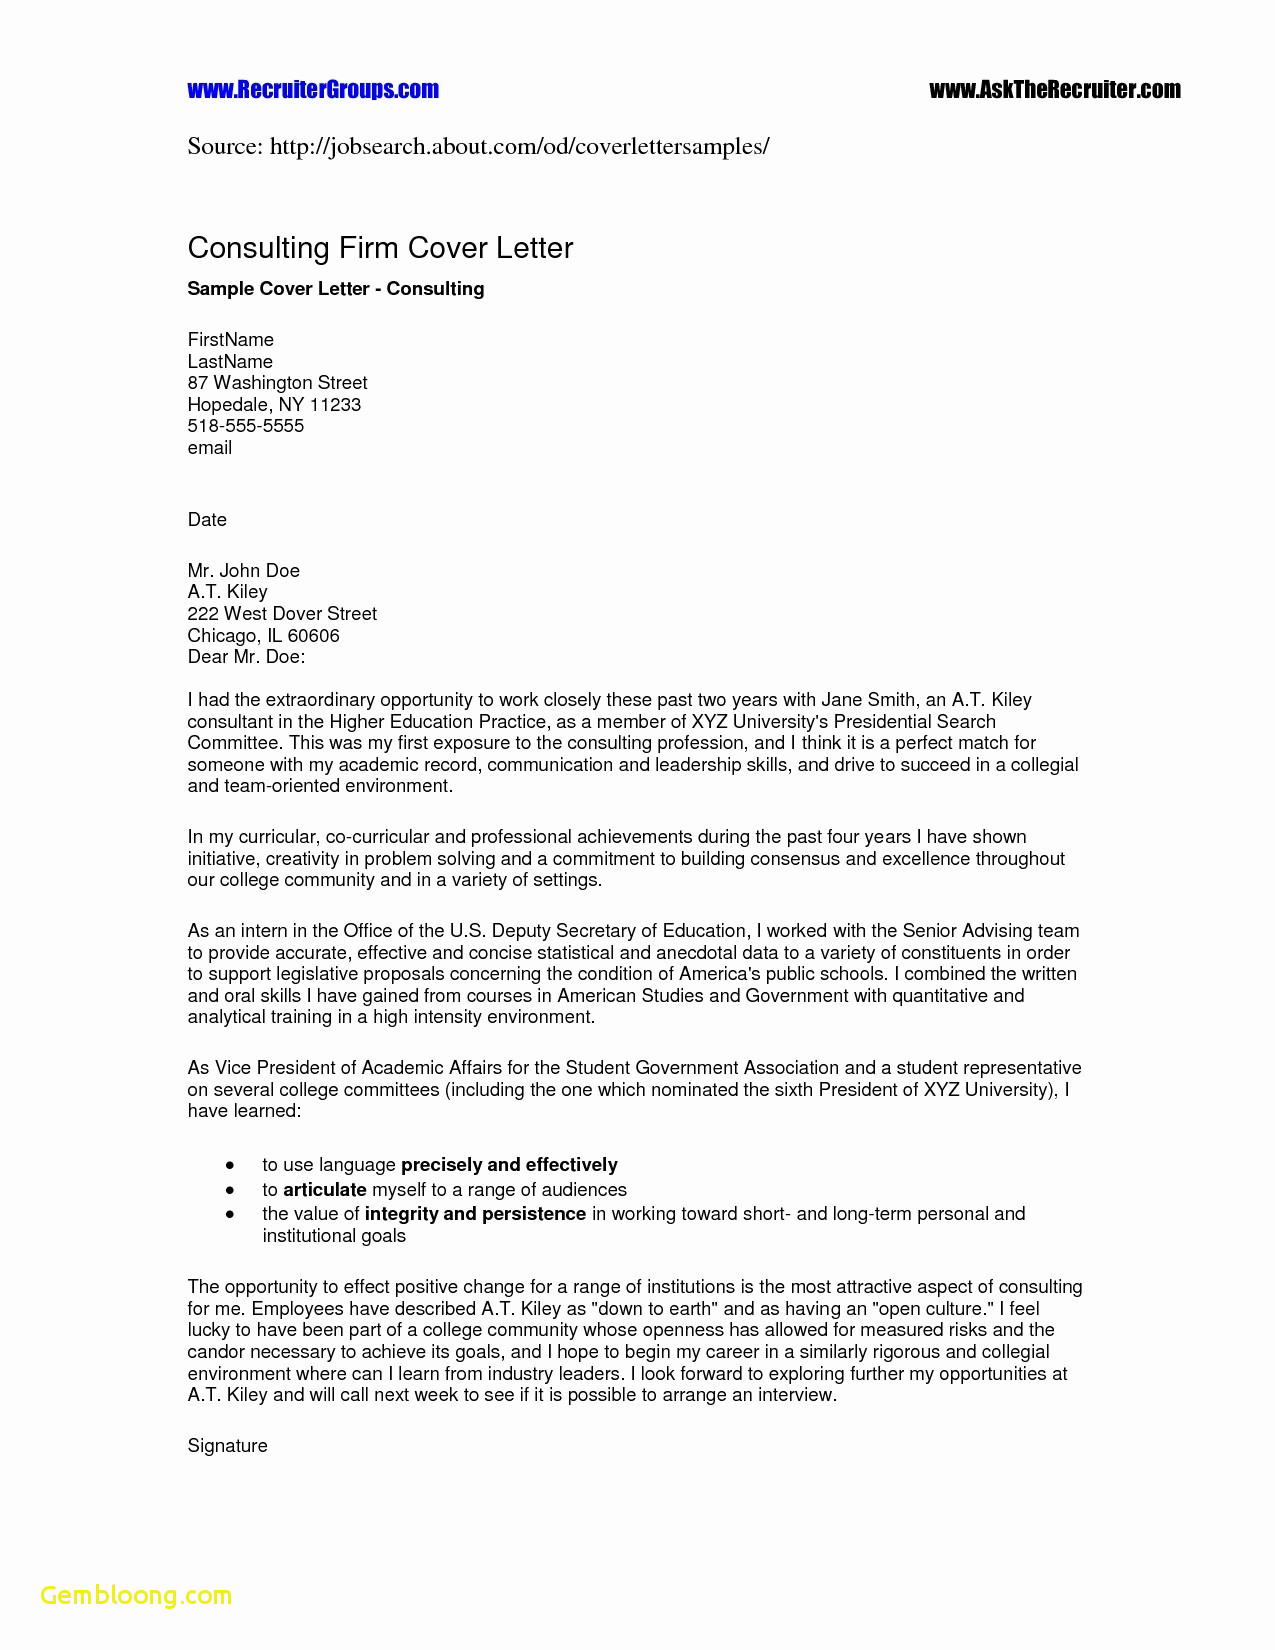 Cover Letter Template Doc Download - Latex Letter Template Beautiful Pact Resume Template Free Download